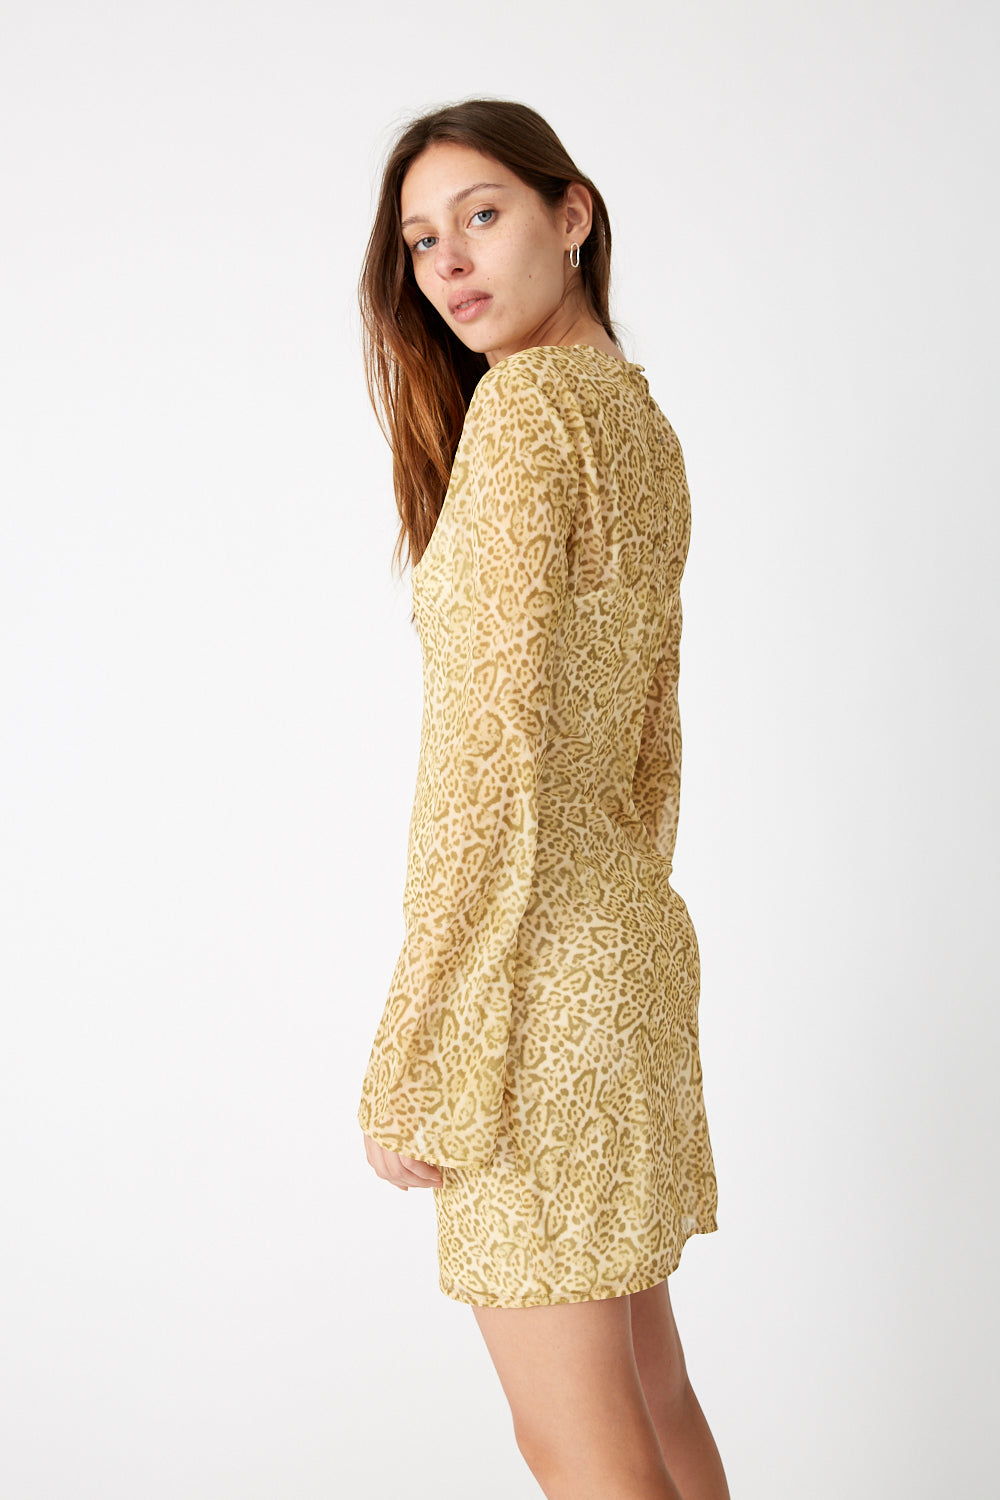 RUMBA LS MINI DRESS | SAFARI